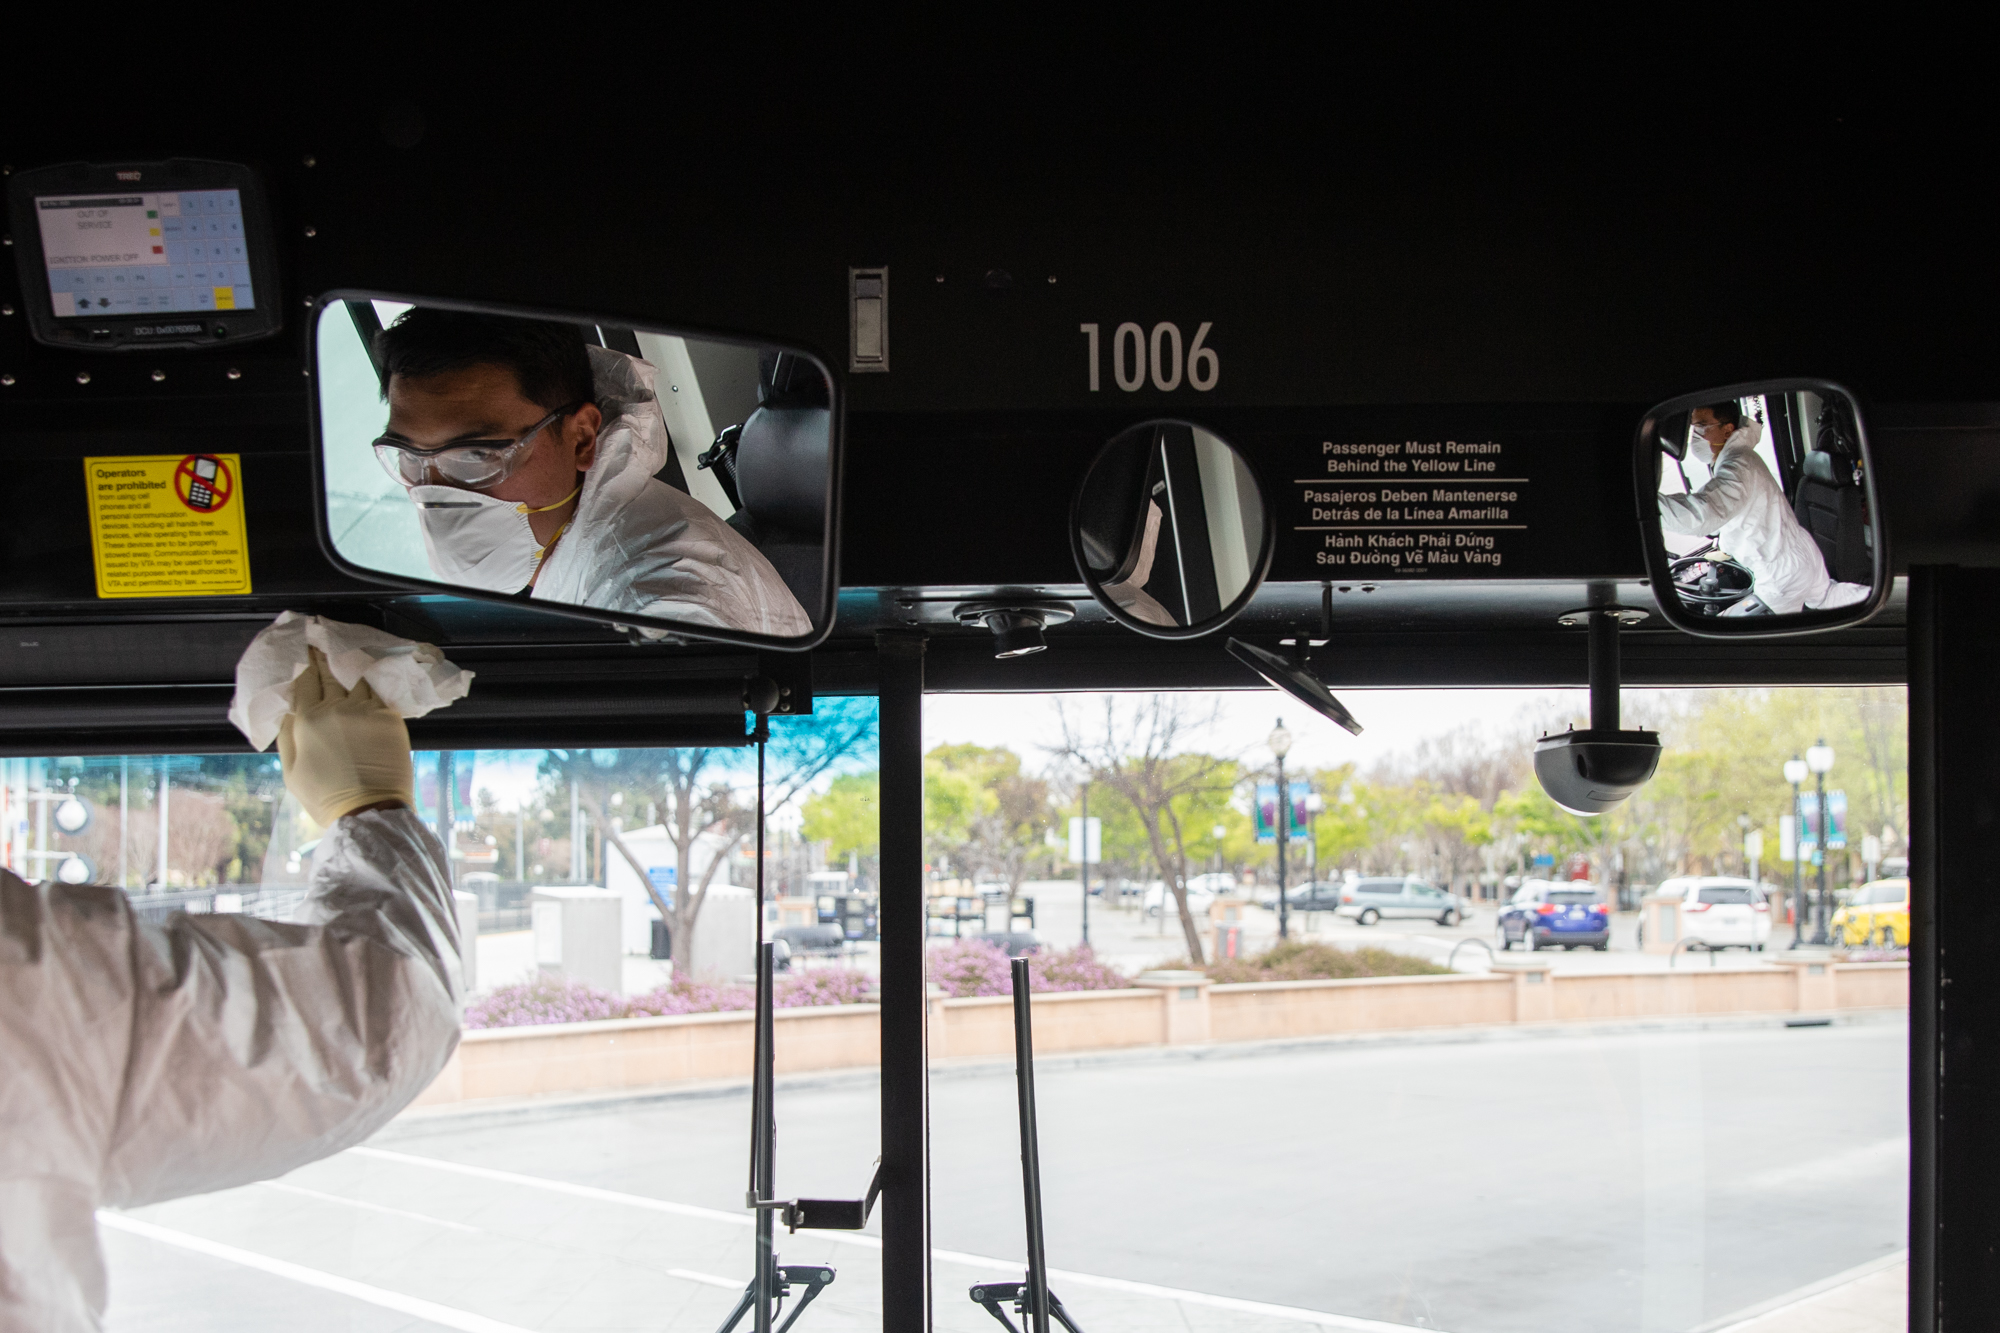 A VTA worker cleans the driver's seat on a bus at the Mountain View train station on March 18. Photo by Magali Gauthier.